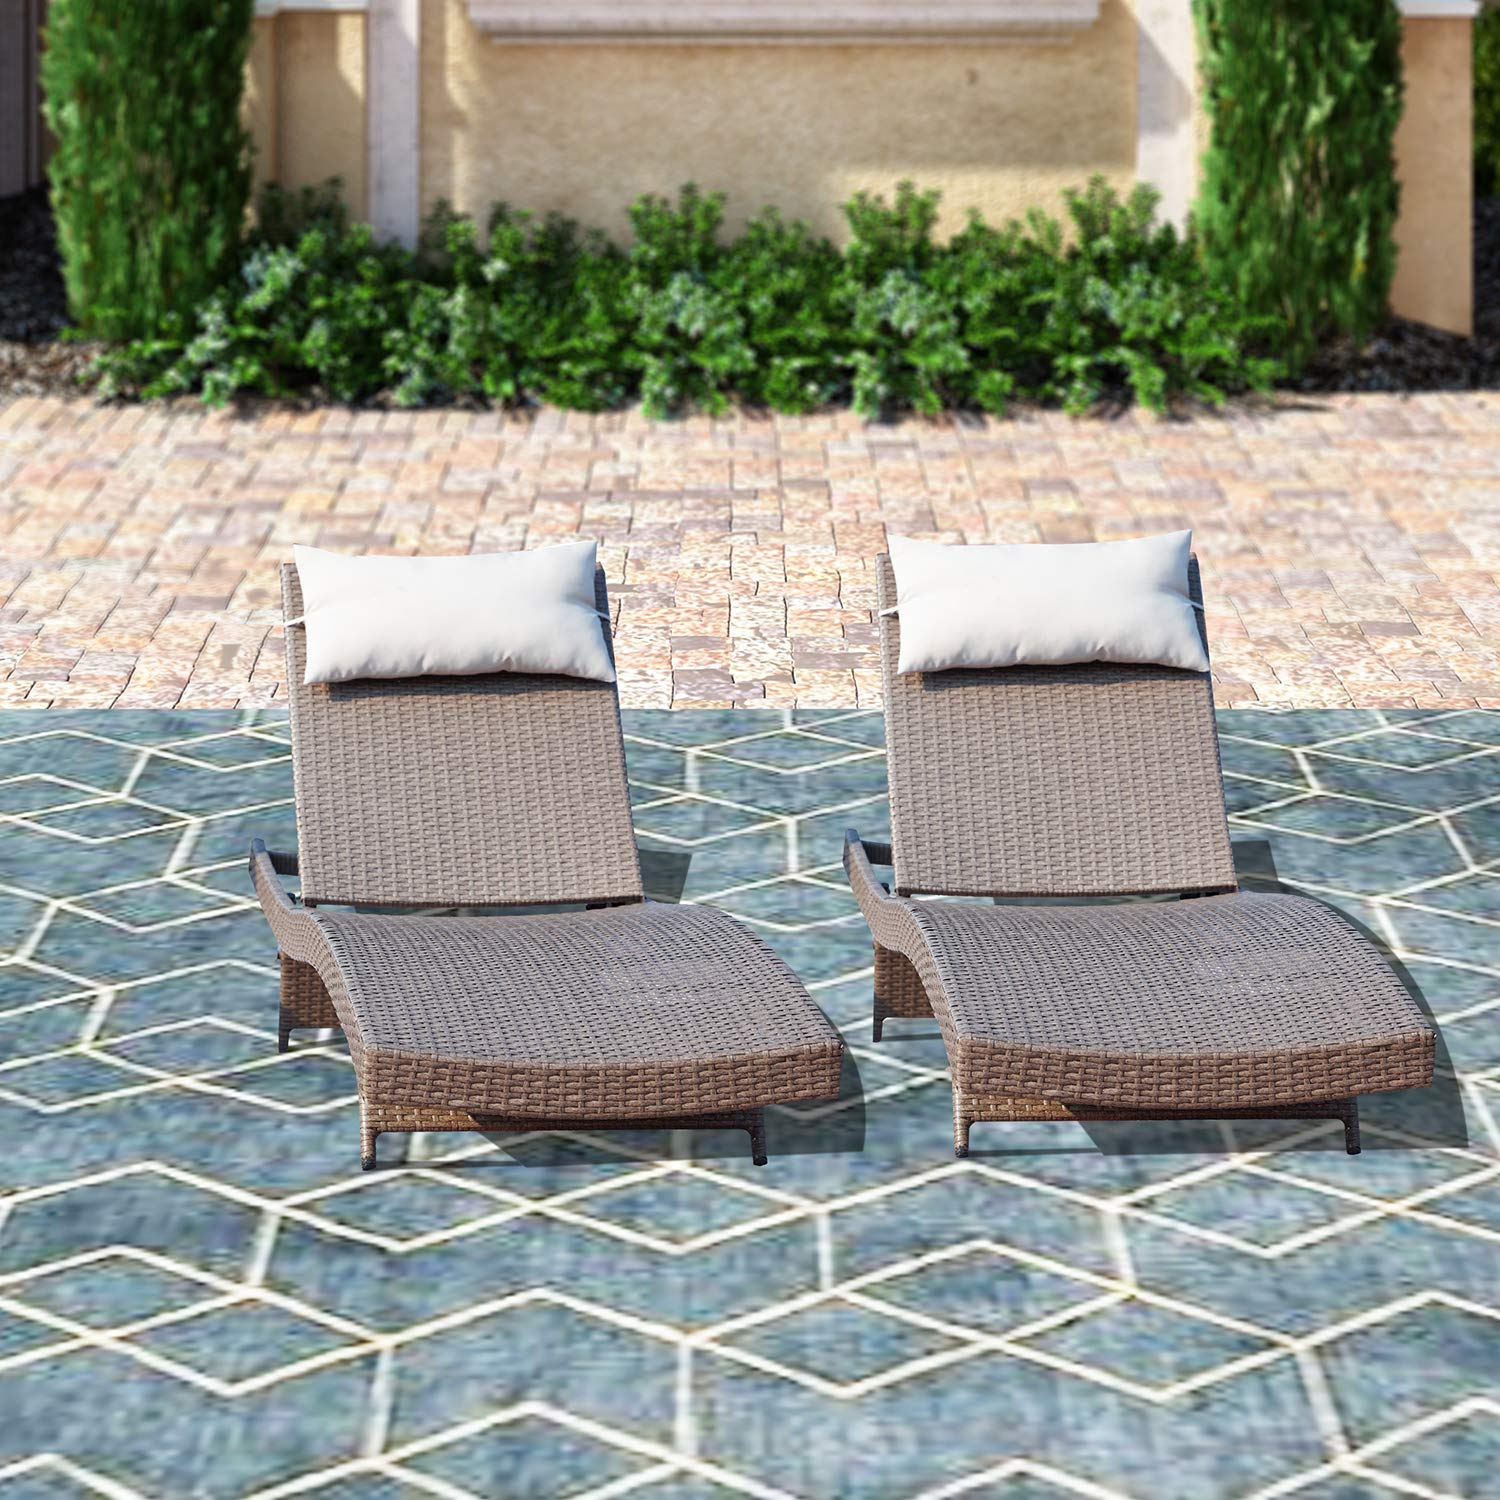 Top Space Chaise Lounge Outdoor Brown Adjustable Wicker Chairs All-Weather Woven Patio Lounger Chair Set (2 Pcs, Brown) by Top Space